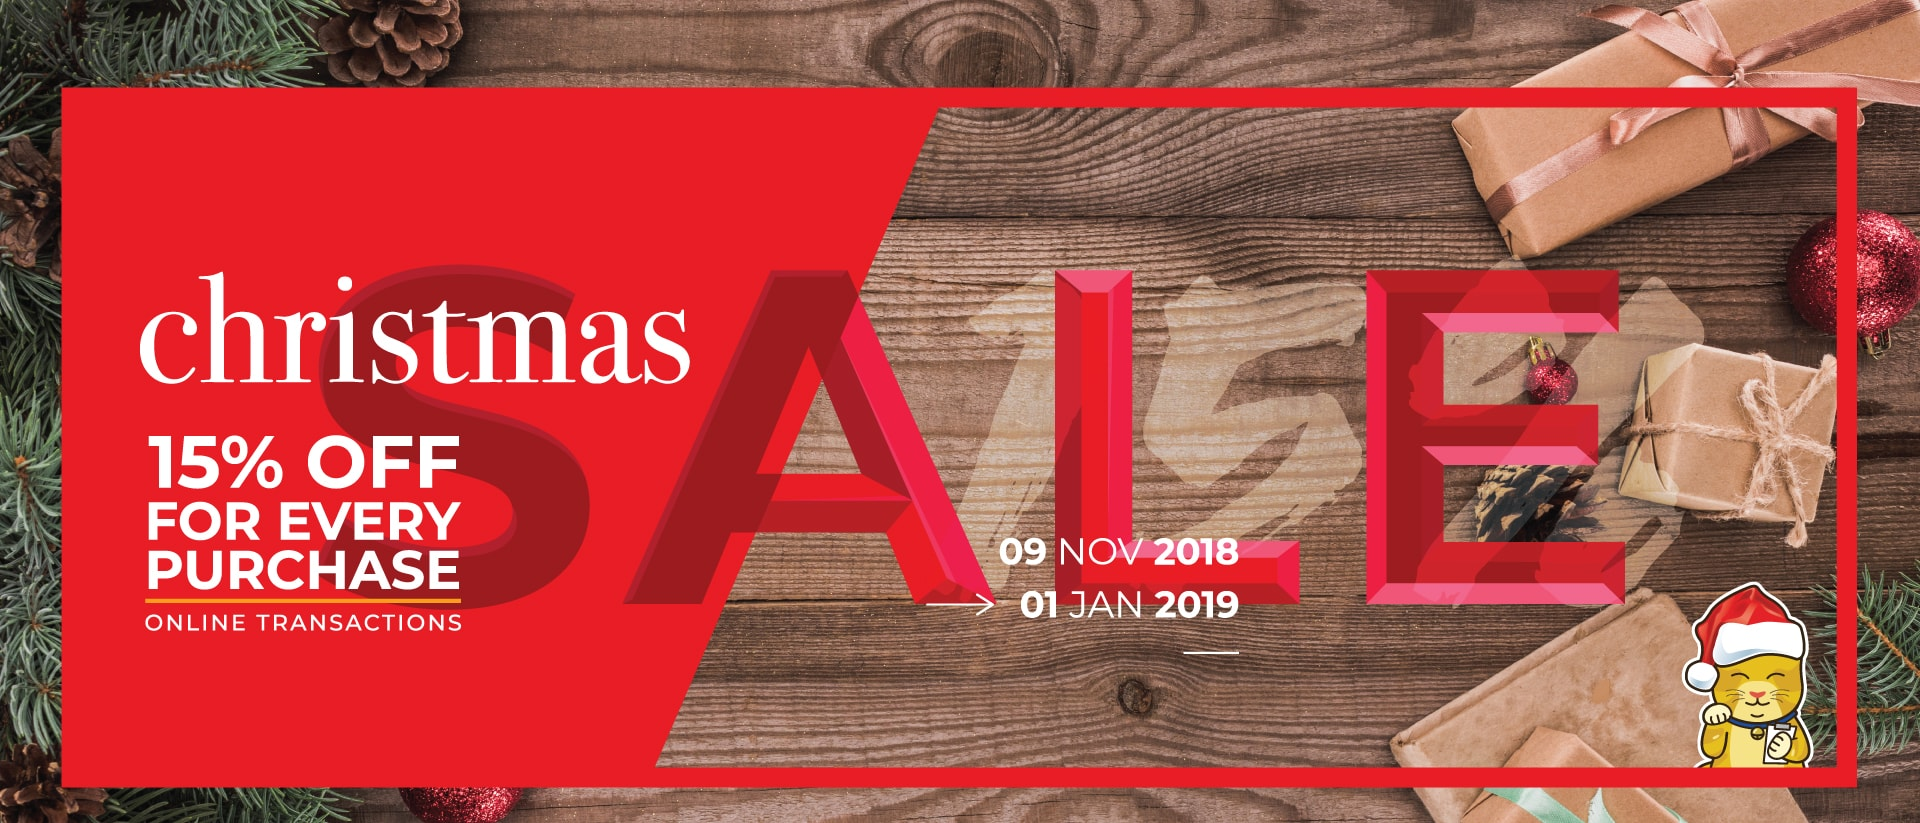 Christmas comes early with our 15% off till 1 Jan 2019